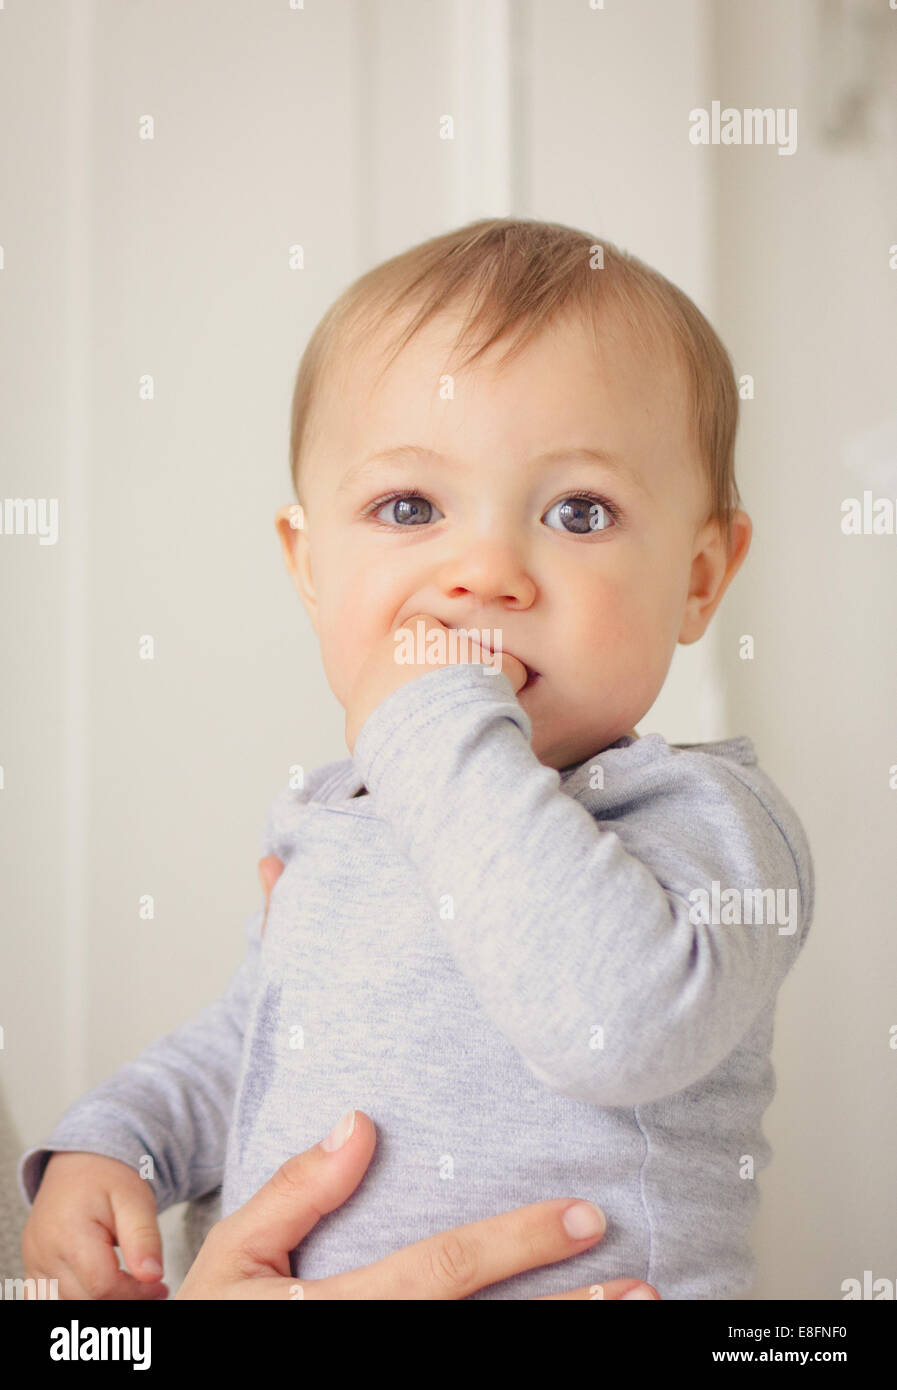 Netherlands, Portrait of baby boy - Stock Image